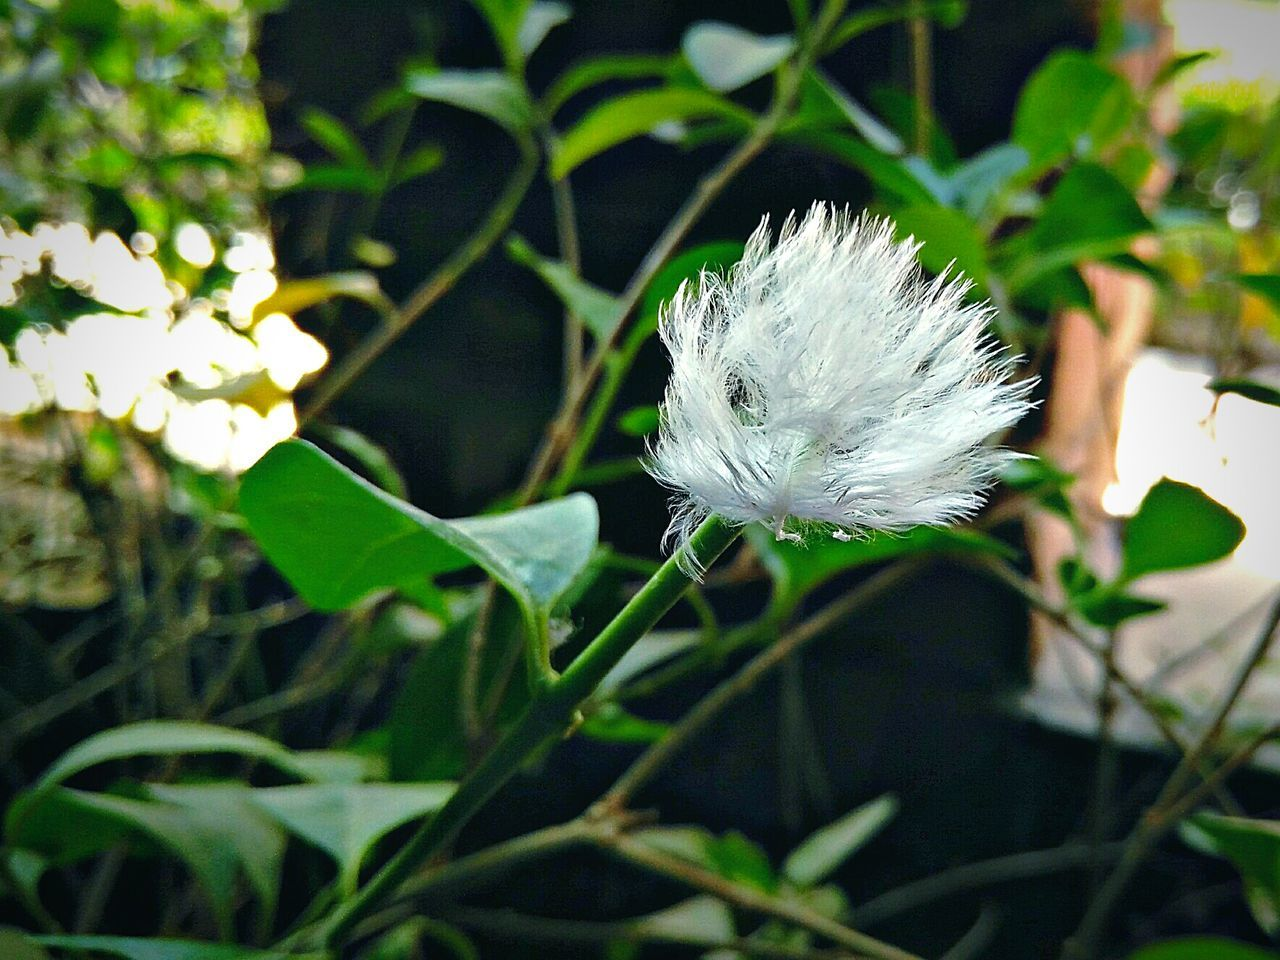 Clear Flower Beautiful Only One Stand Alone Greenlife Green Color White Flower Whiteflowers Randomphotography Natural Beauty Nature_collection Landscape_collection EyeEmNatureLover Simple Elegance